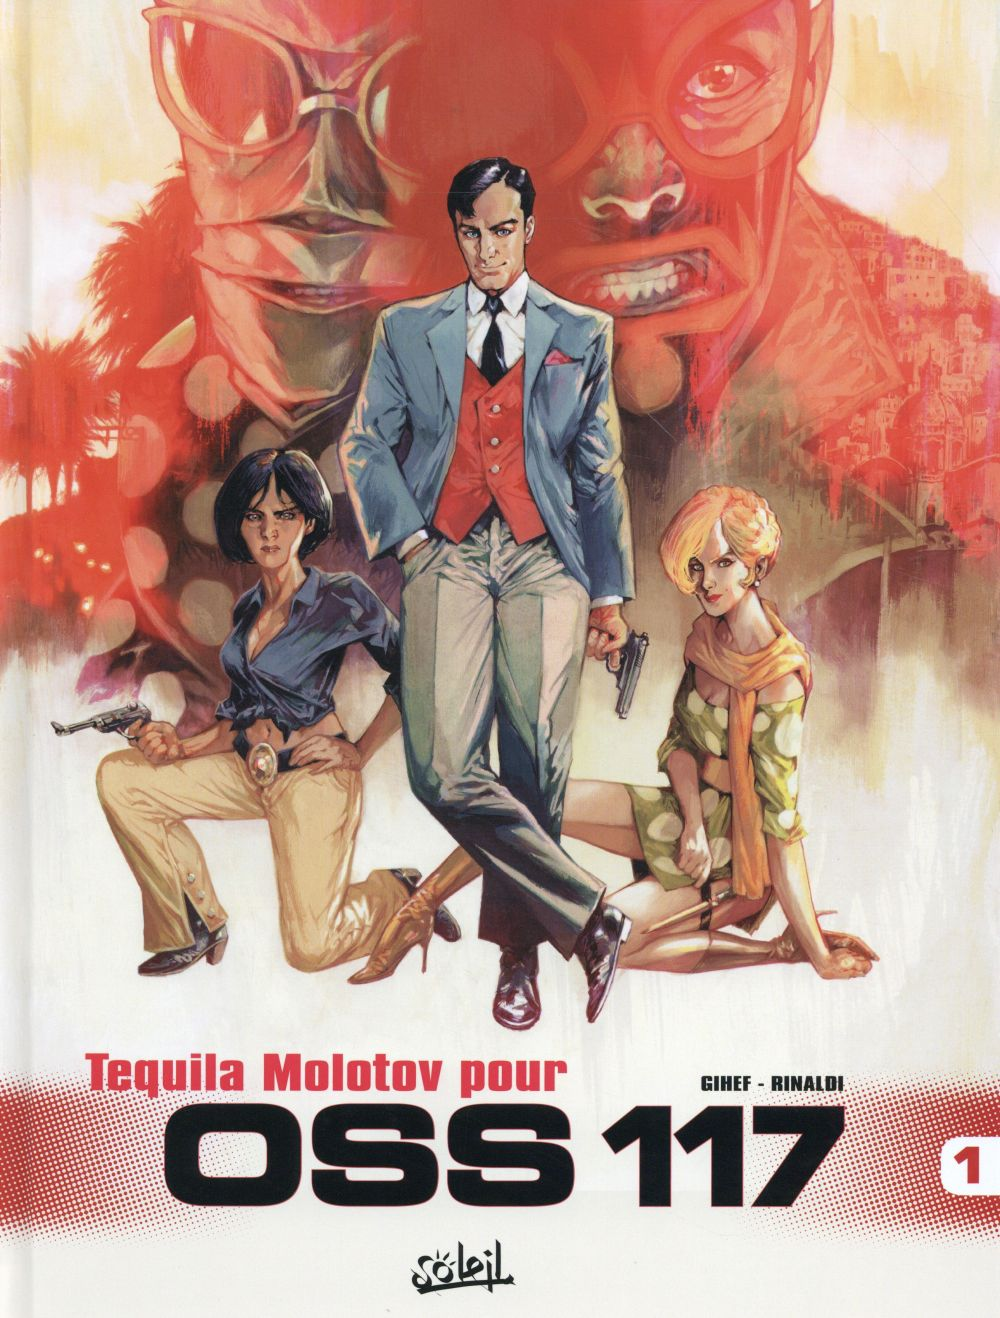 OSS 117 T1 - TEQUILA MOLOTOV POUR OSS 117